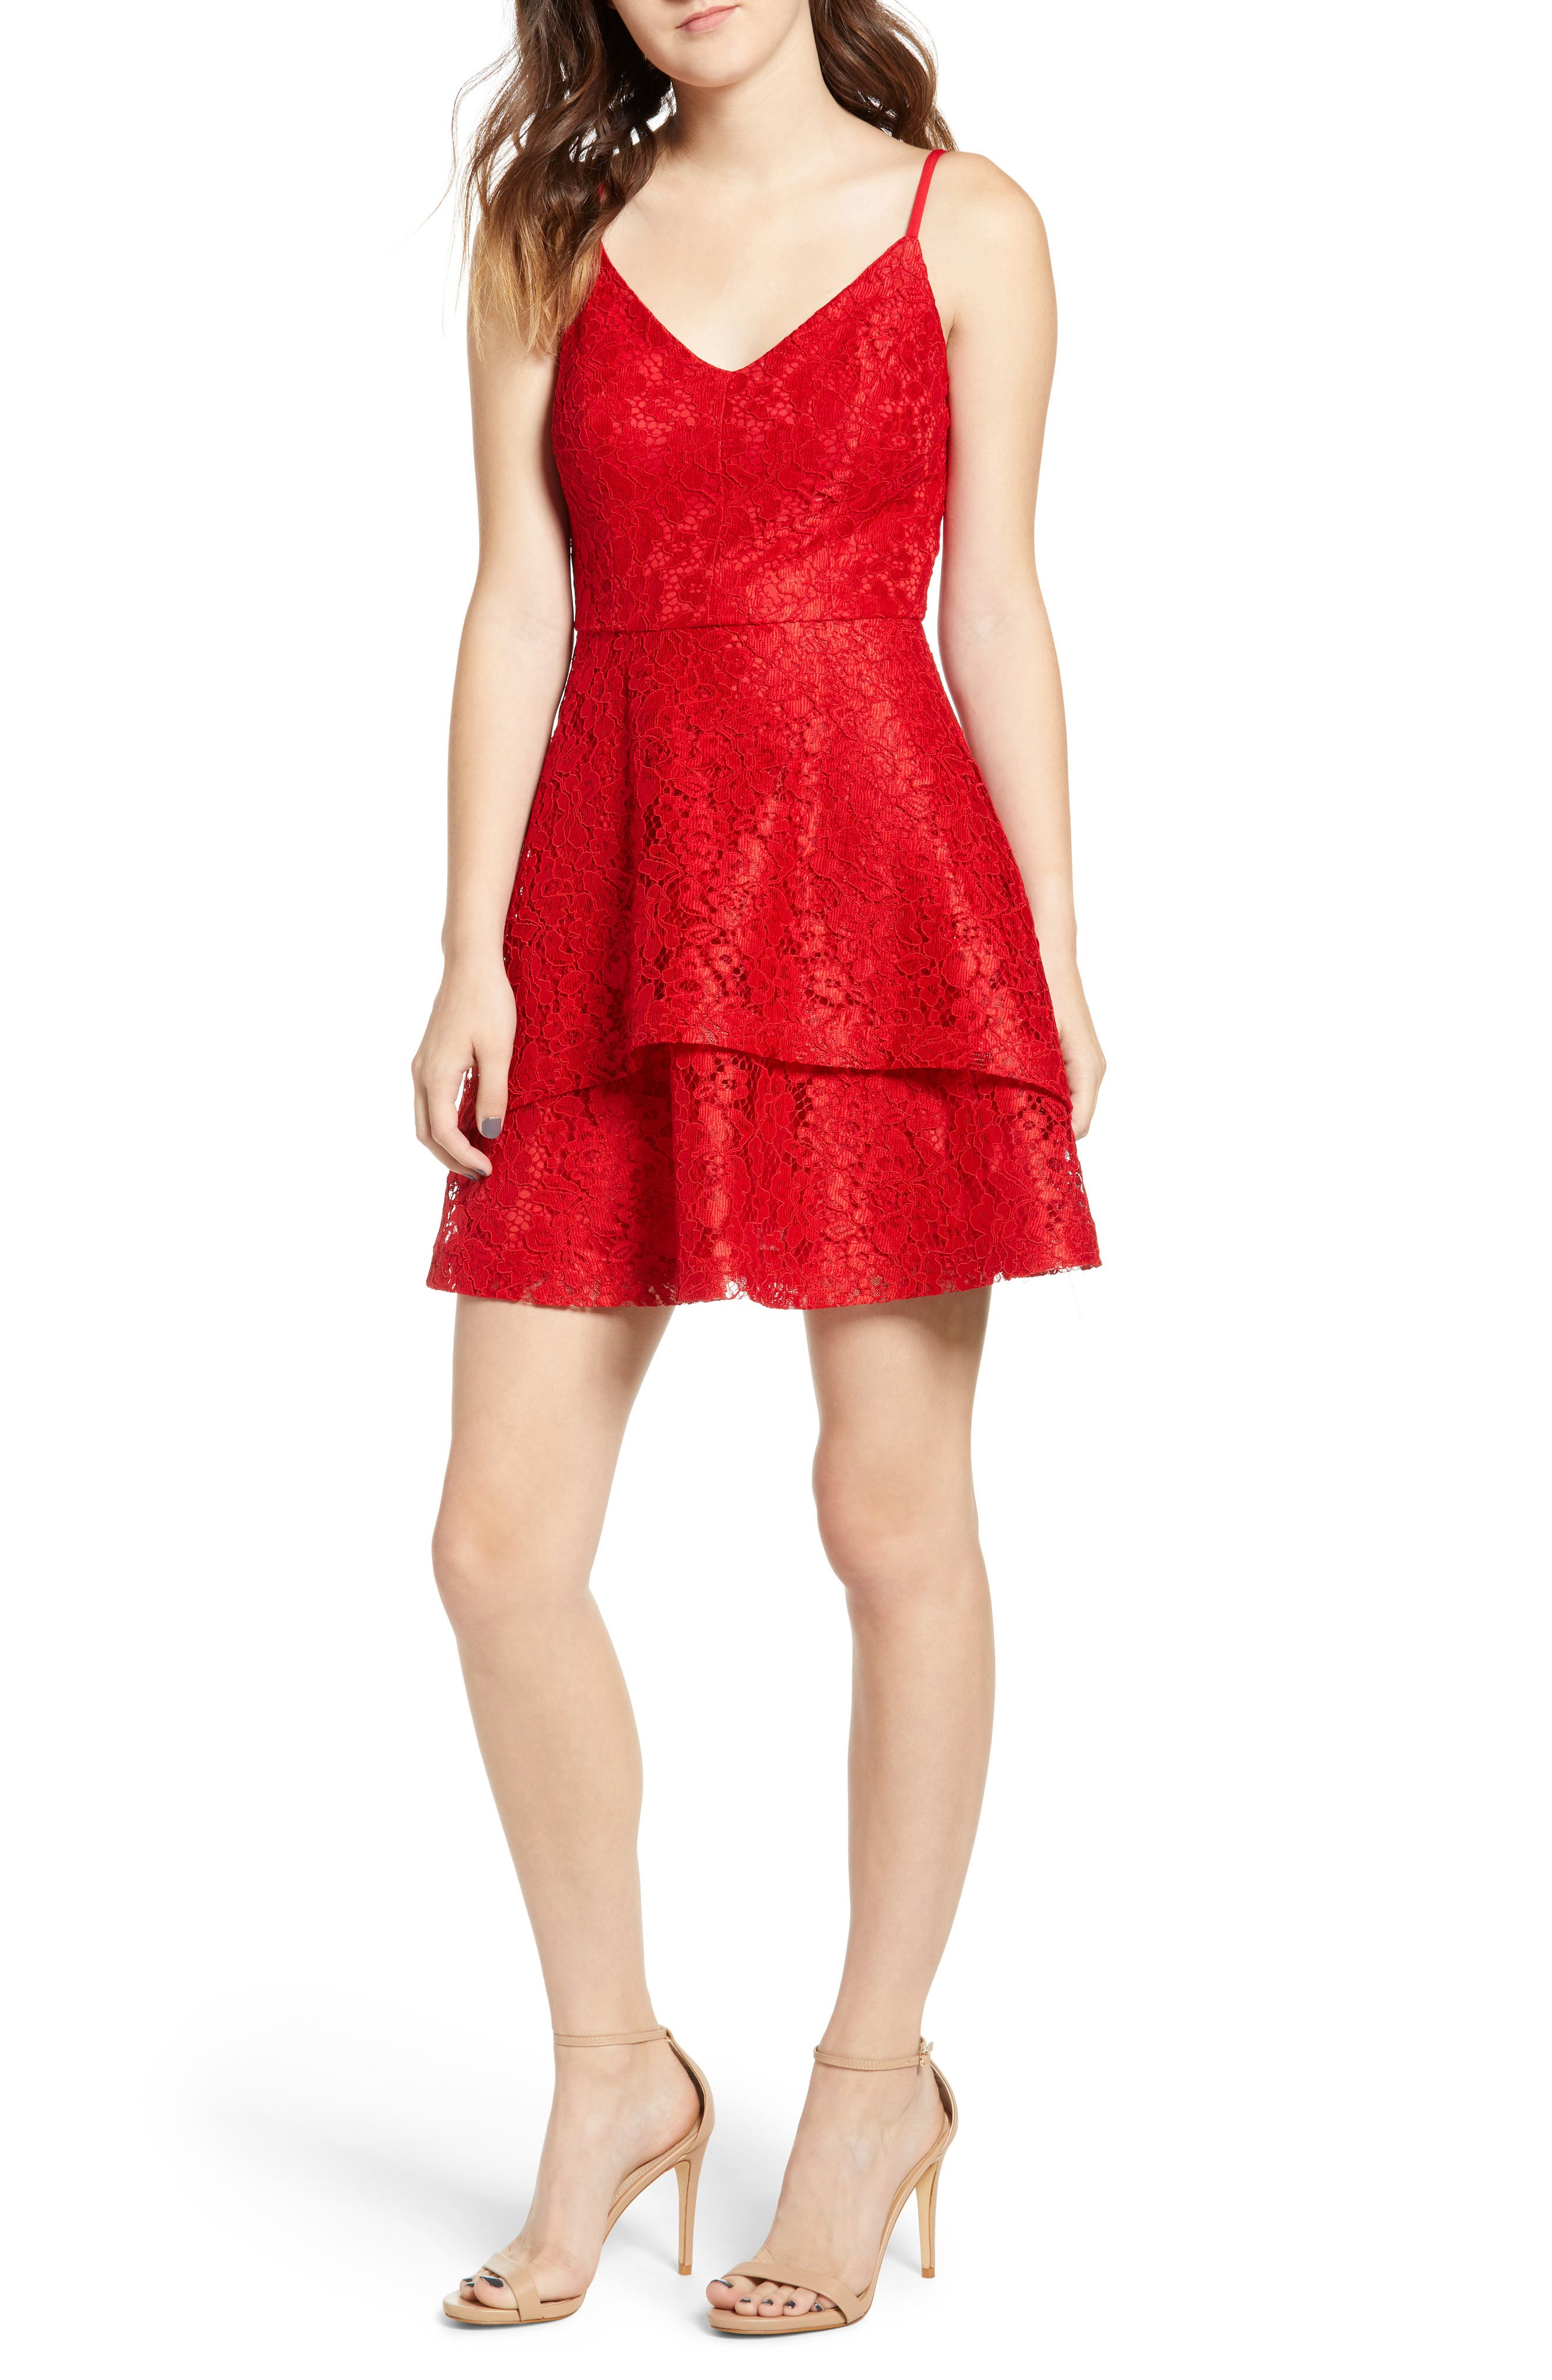 SPEECHLESS, Lace Fit & Flare Dress, Alternate thumbnail 6, color, 600